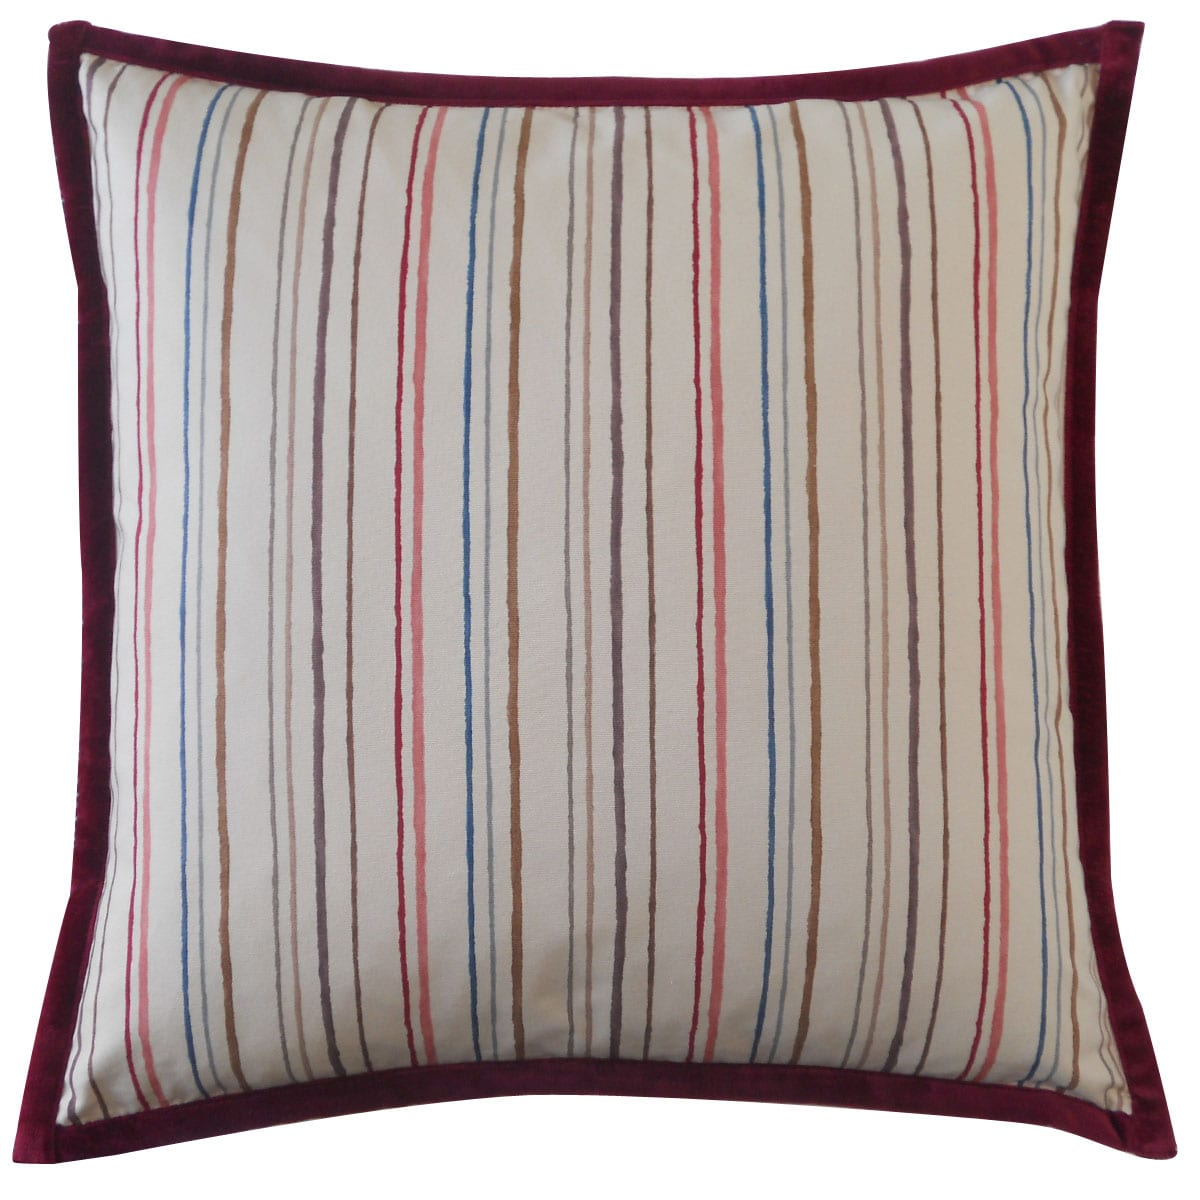 Jiti Pillows Handmade Alita Stripes Down Throw Pillow Walmart Com Walmart Com